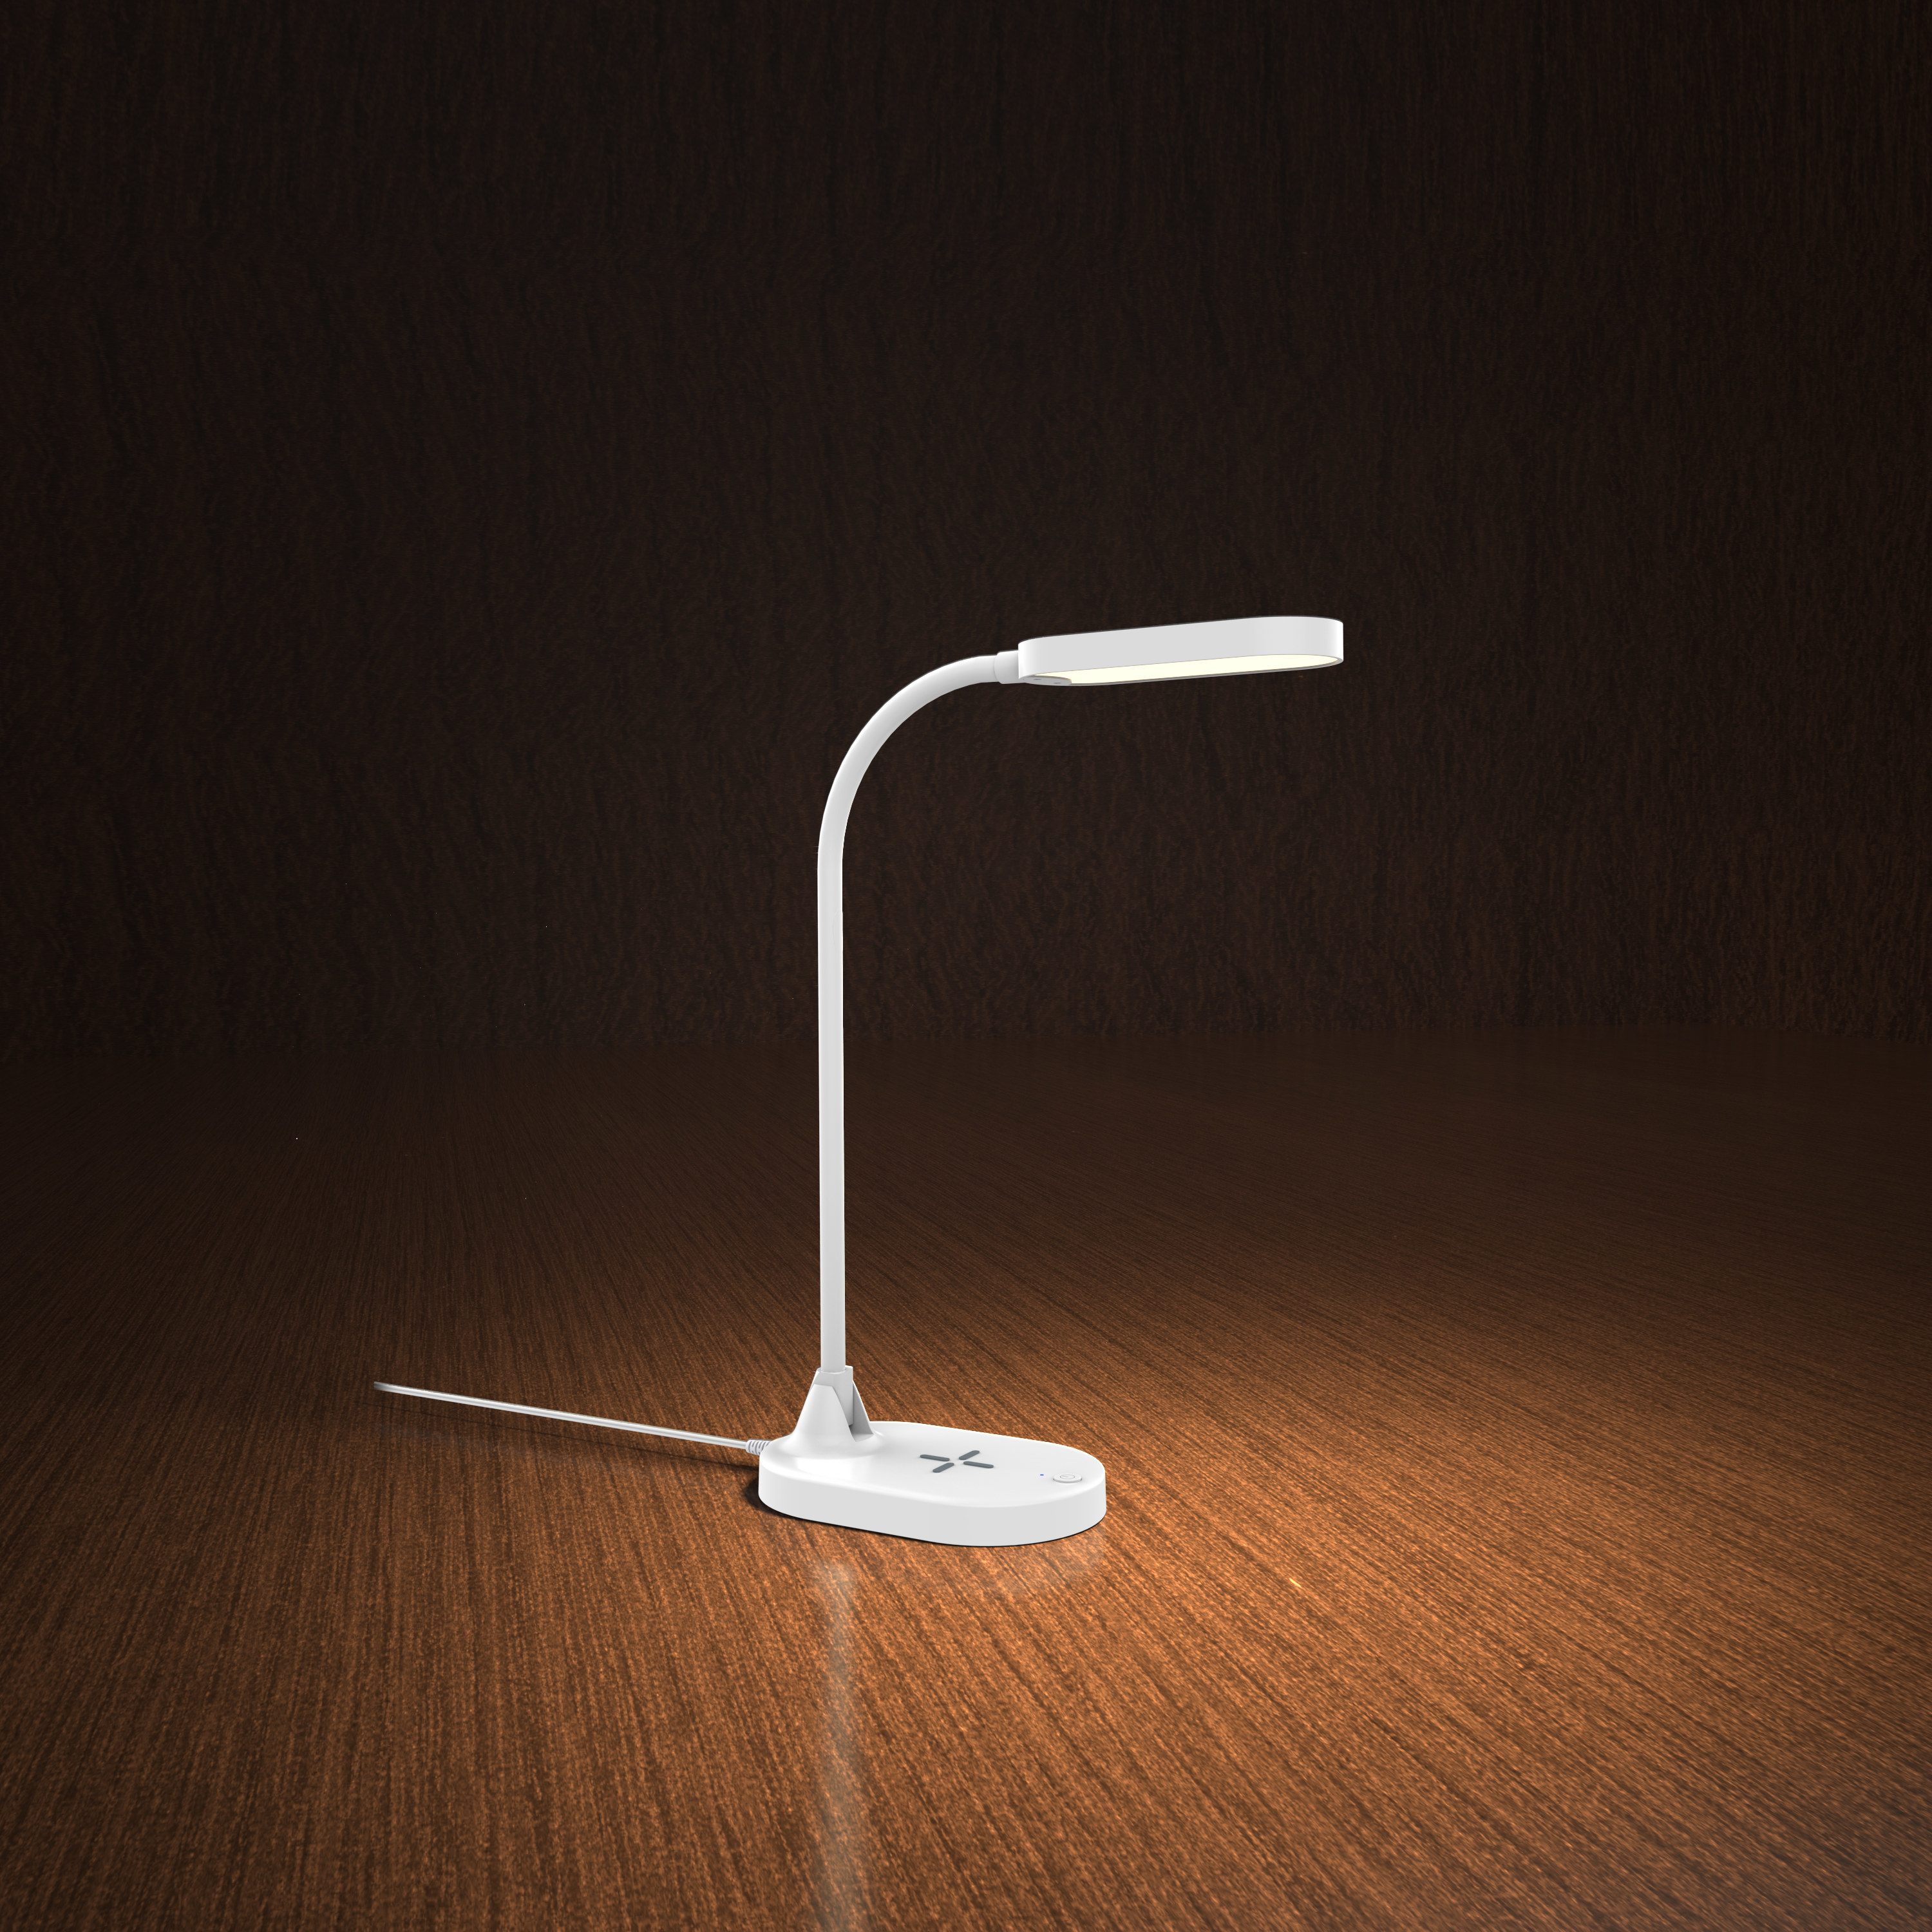 The white lamp on a wooden background